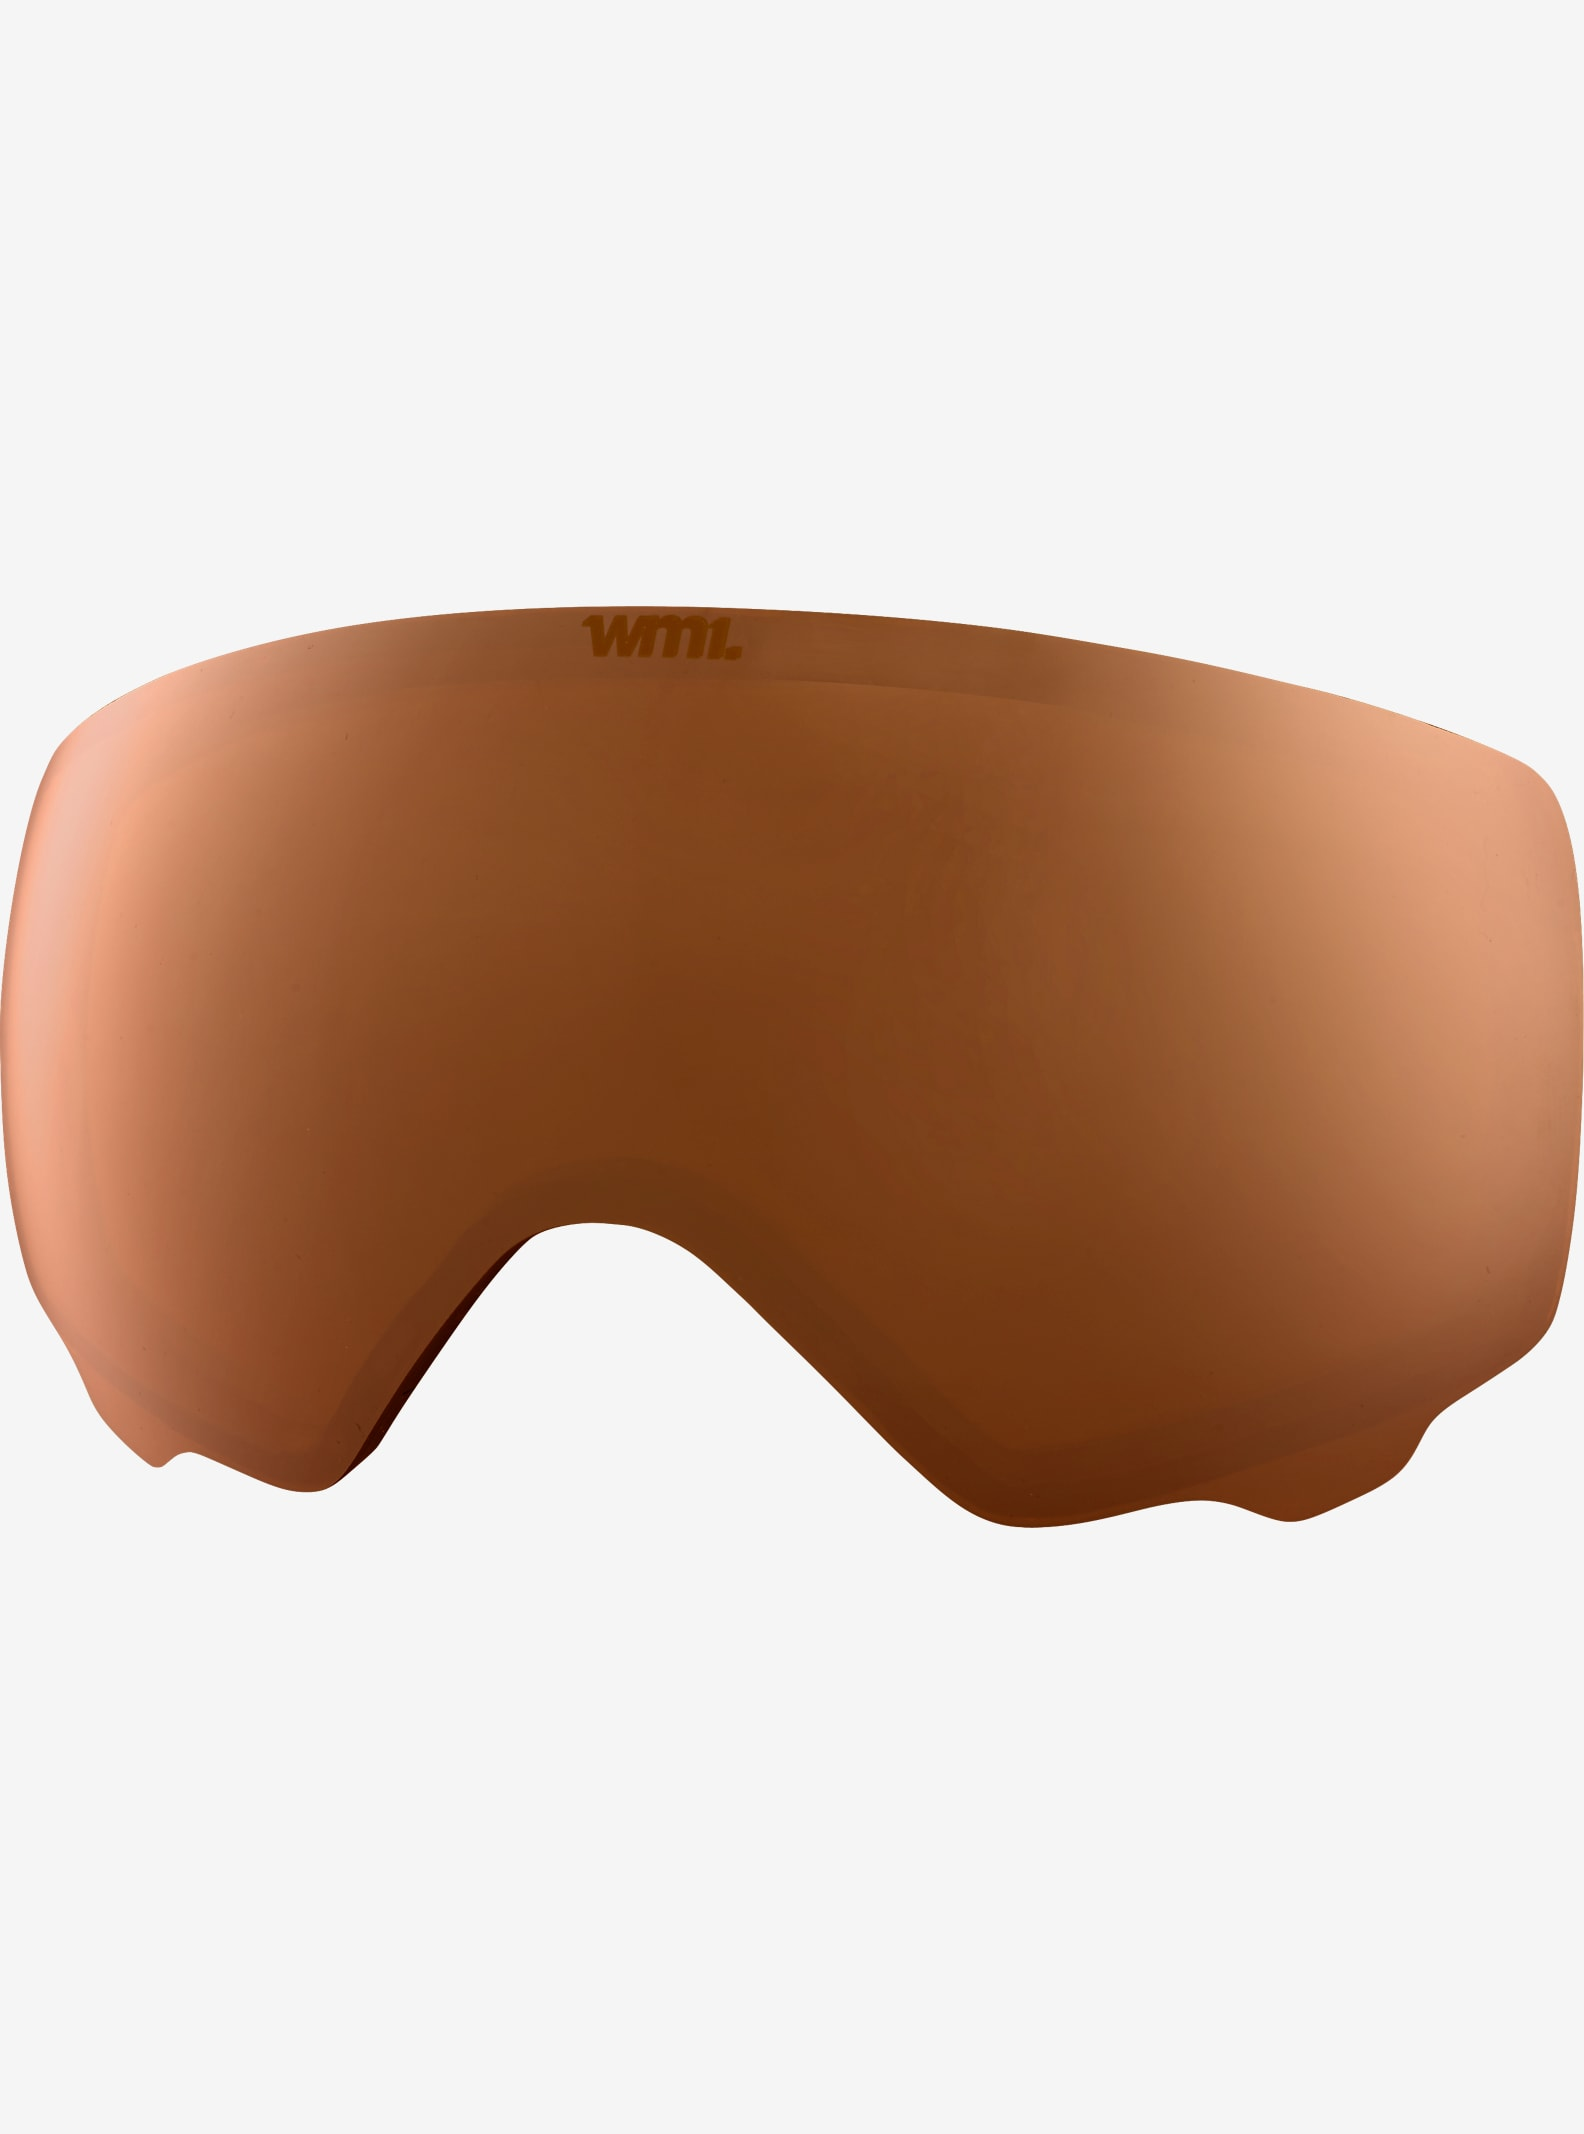 anon. WM1 Goggle Lens shown in Amber (55% VLT)